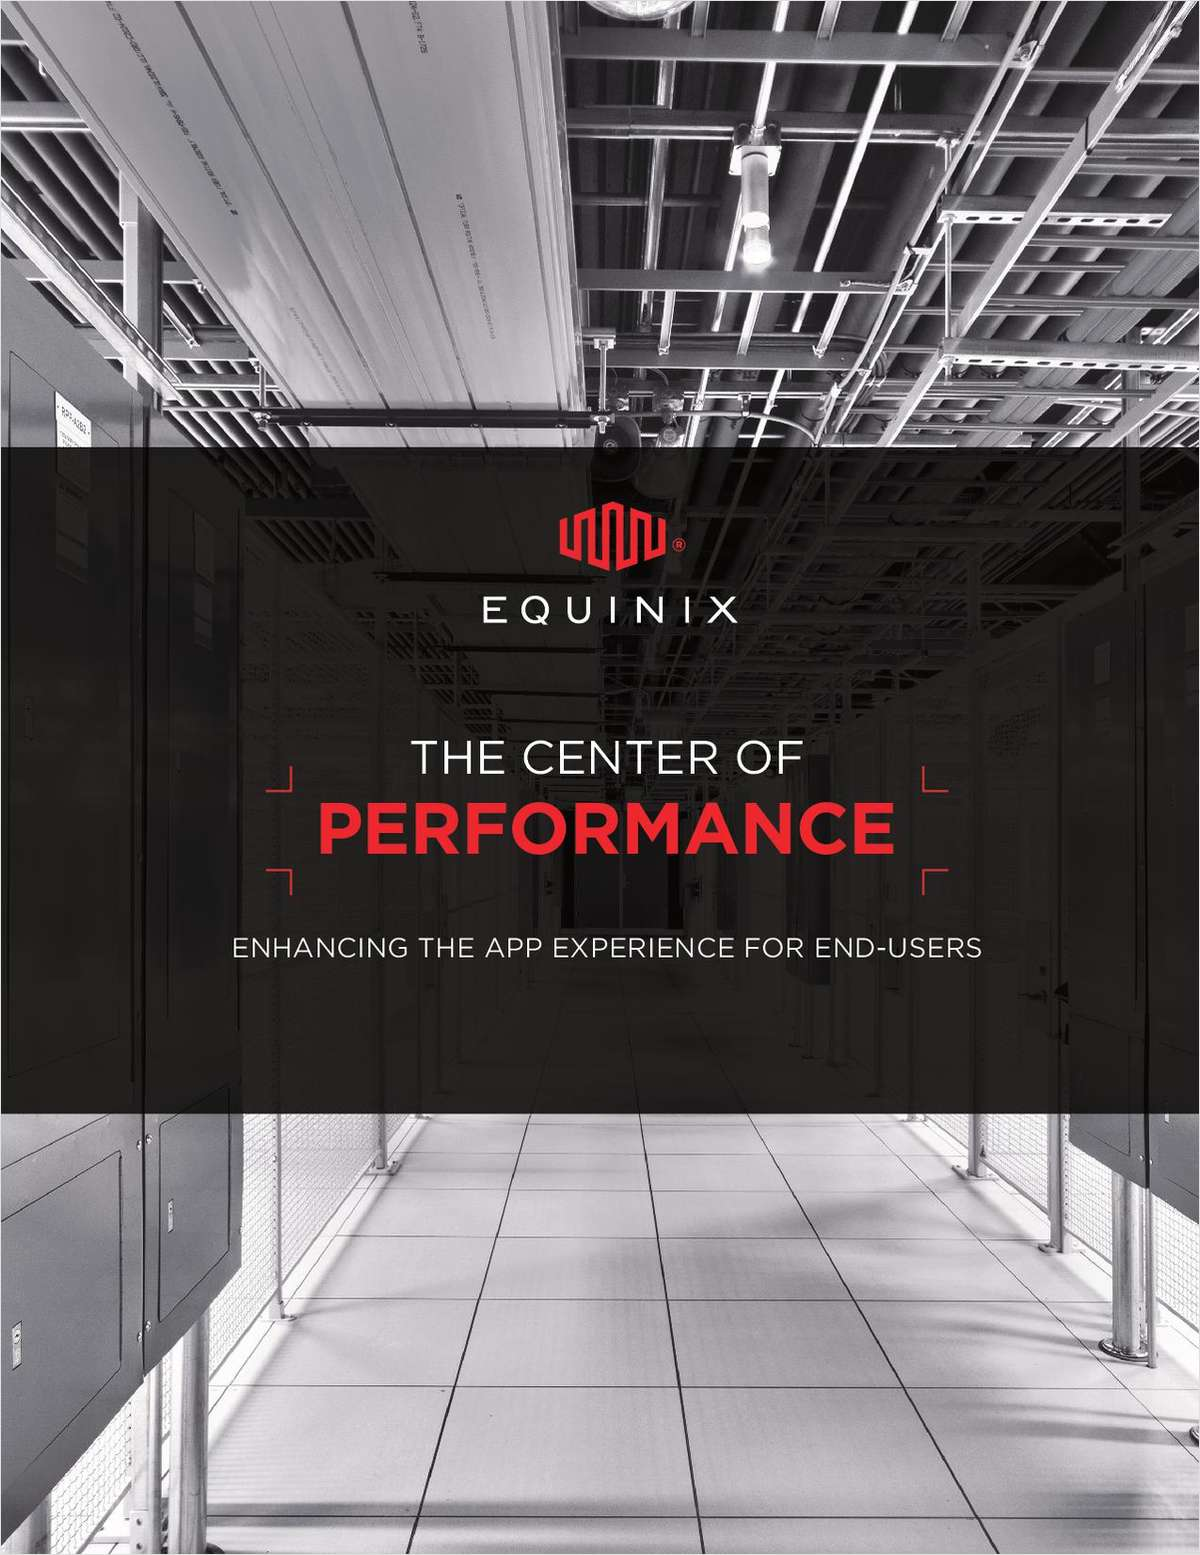 The Center of Performance: Enhancing the App Experience for End-Users